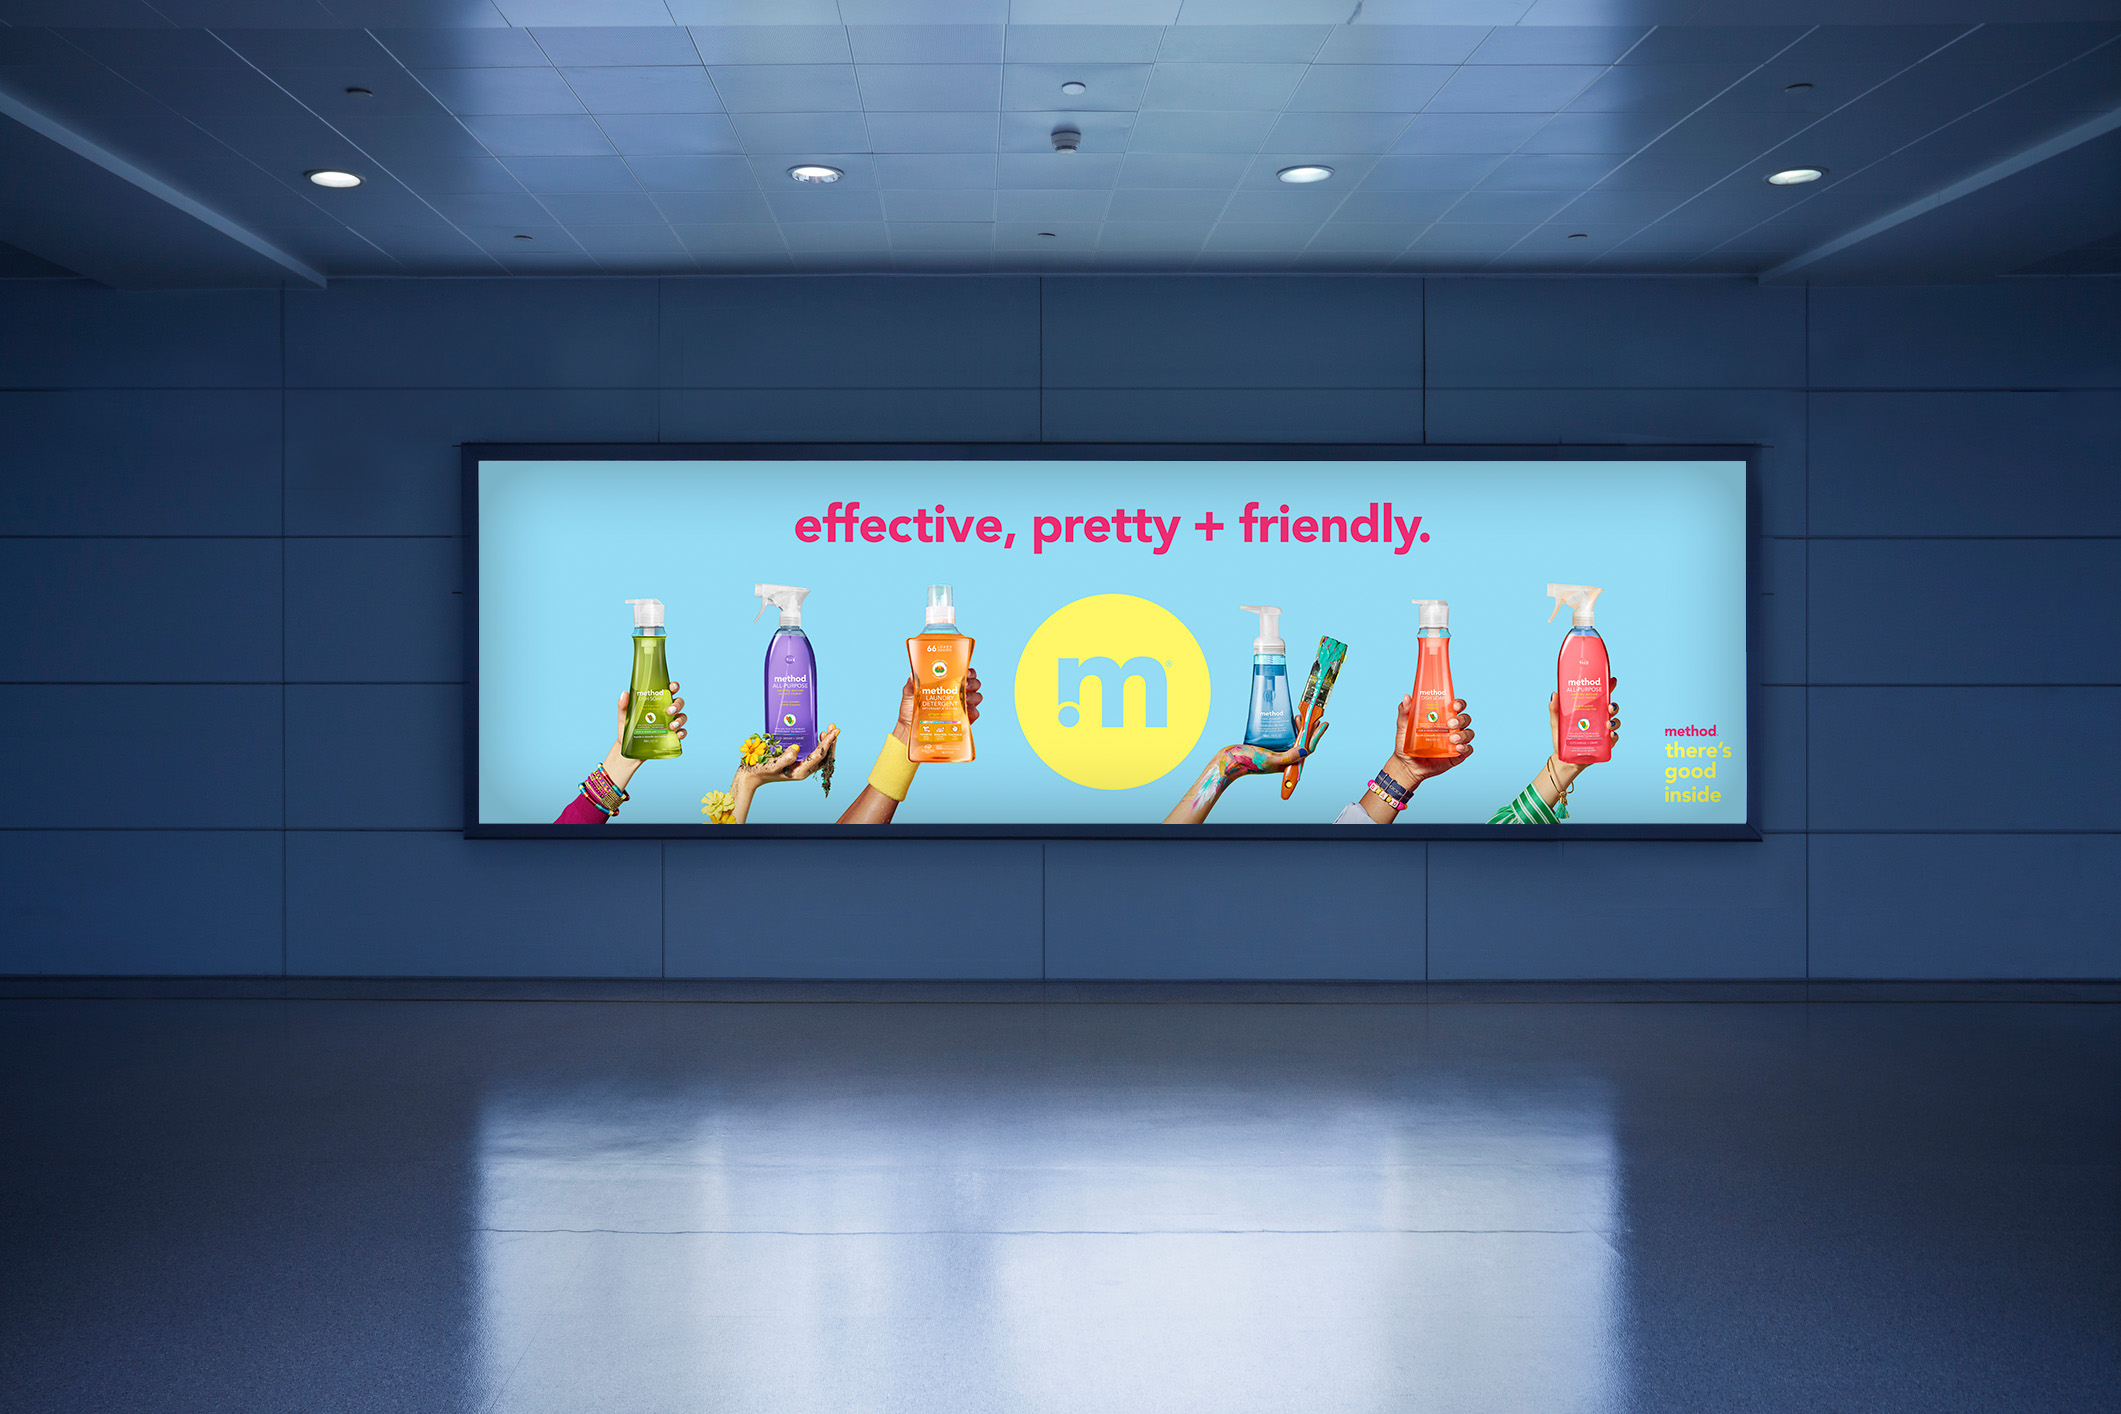 method® Brings Together Company and Community to Launch New Brand Campaign,